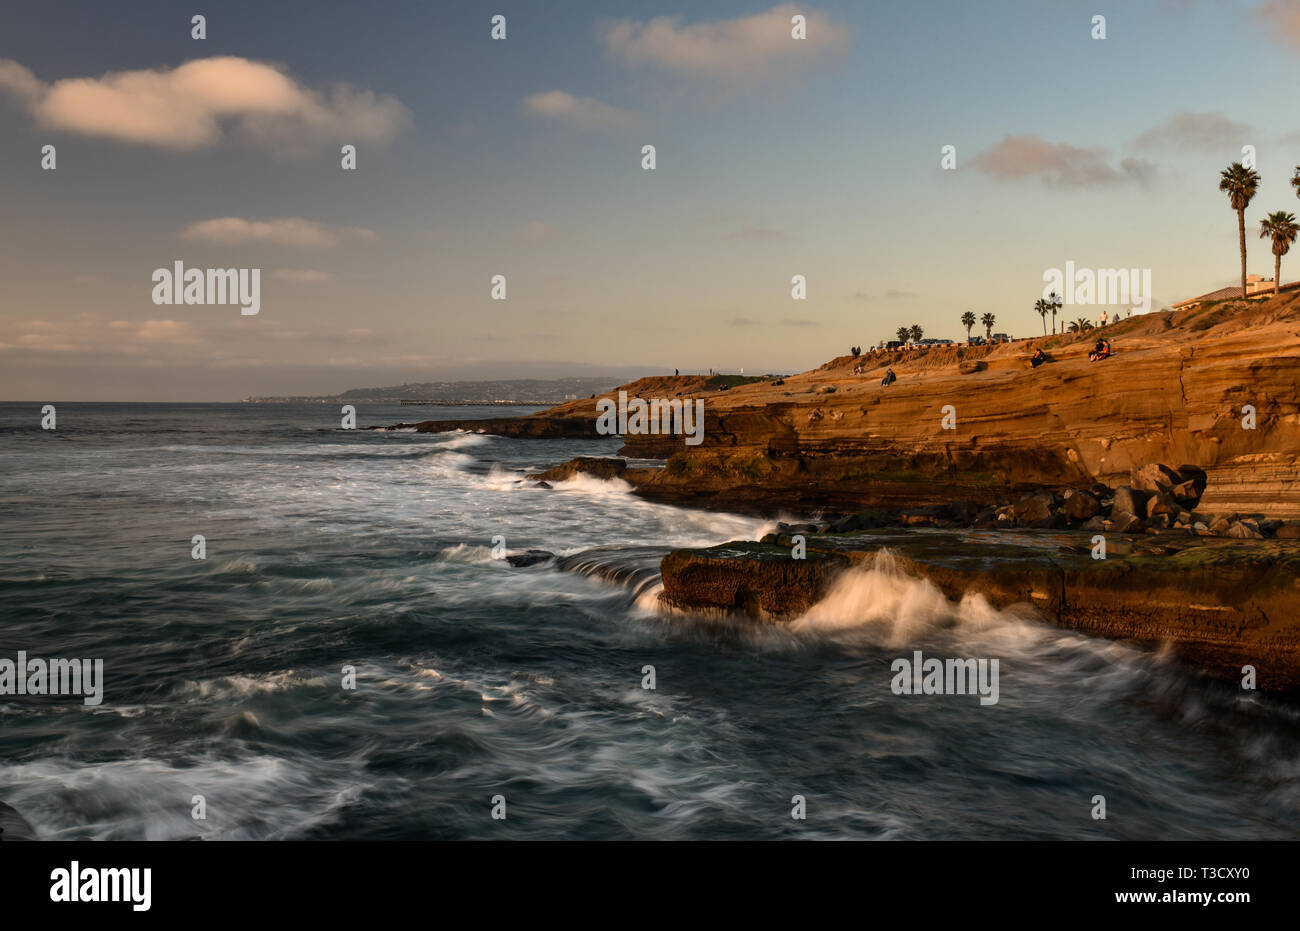 Waves from Pacific Ocean crashing on rocky shoreline along famous Sunset Cliffs Natural Park, Point Loma, San Diego, CA, USA Stock Photo